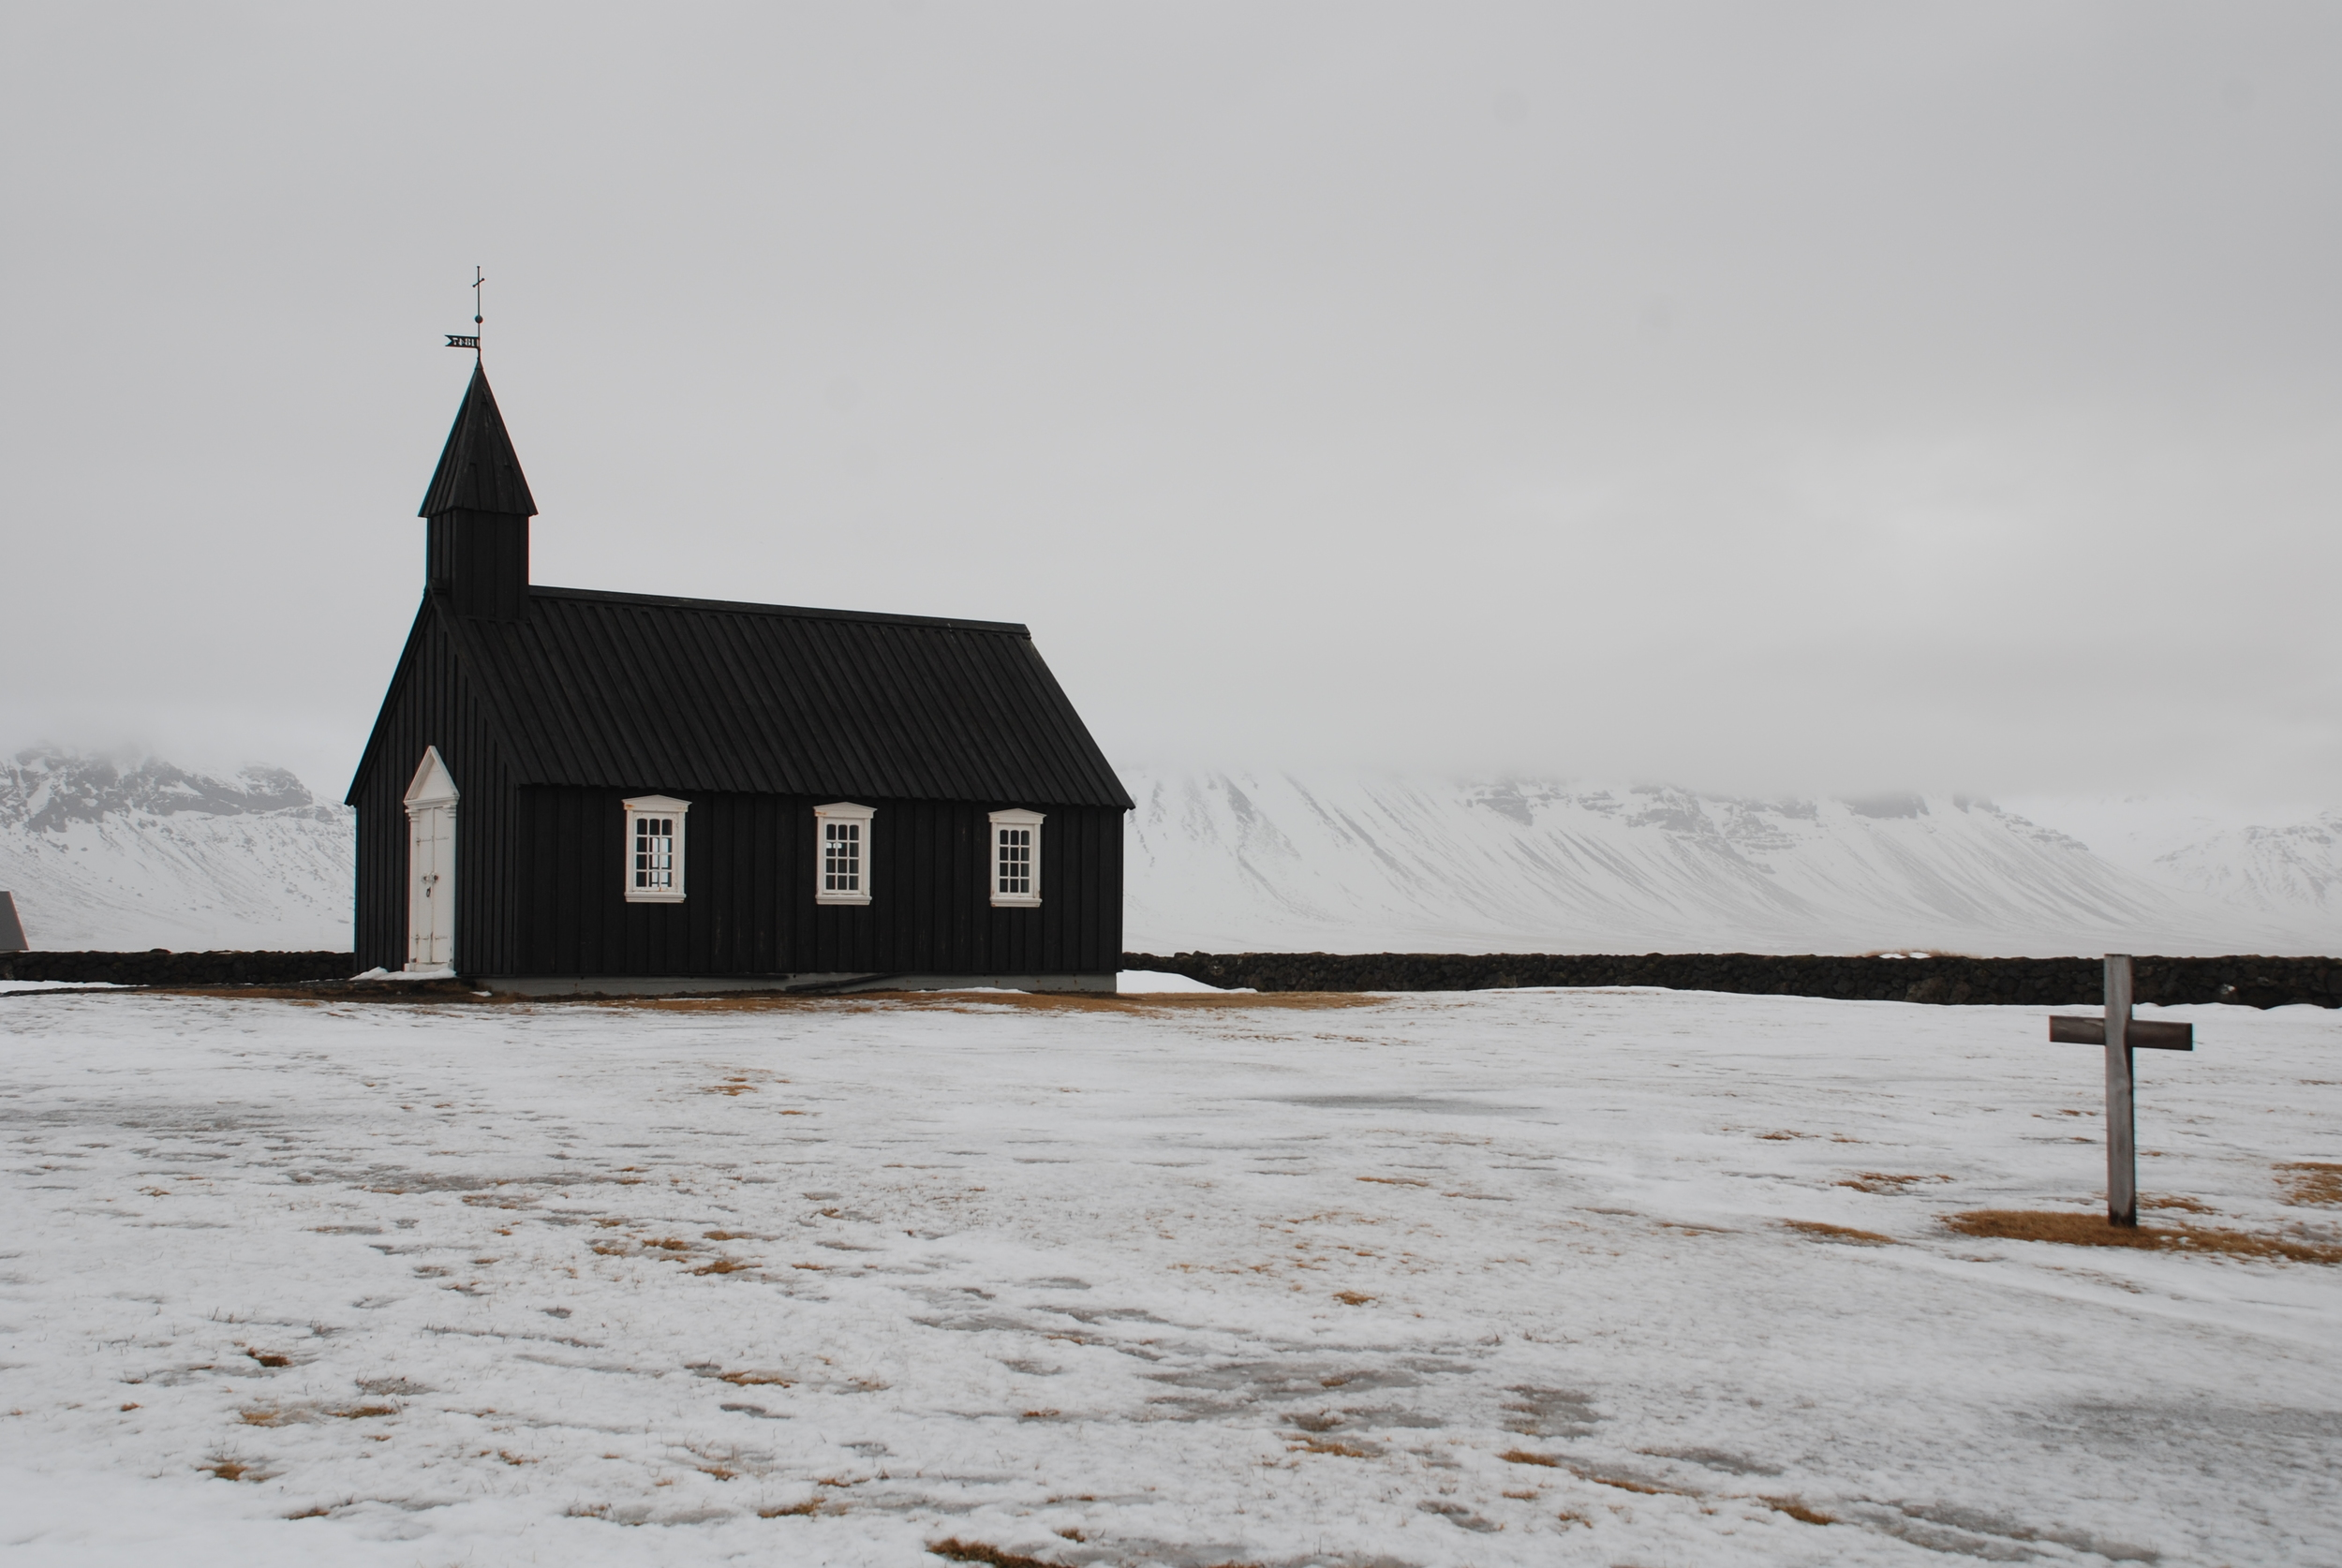 """This church sits outside of Hotel Budir, situated in a lava field on the westernmost tip of the Snaefellsnes peninsula. The day spent on the peninsula was an interesting one—driving hours without seeing a soul, the vastness of the landscape hard to comprehend.The sun just went down, it was freezing cold, and there were just a few cars left on the newly dark road. In an attempt to capture a photo of the sunset, we veered off the rode unknowingly into a snow covered ditch.Car after car pulled to the side of the road, but there wasn't much that could be done. A woman with her kids in the car offered to help """"push,"""" but the task was greater than her kindness.Finally, after about an hour of trying to dig the car out, an older Icelandic gentleman in an old Land Rover Defender pulled to the wrong side of the road. He took rope from the back of his pickup and tied his truck to ours without speaking a word—we couldn't speak his language, he couldn't speak ours. He put his truck in reverse and took us with him. Sometimes just a look, an act of kindness, a refusal of payment, a hug, and a smile transcend."""